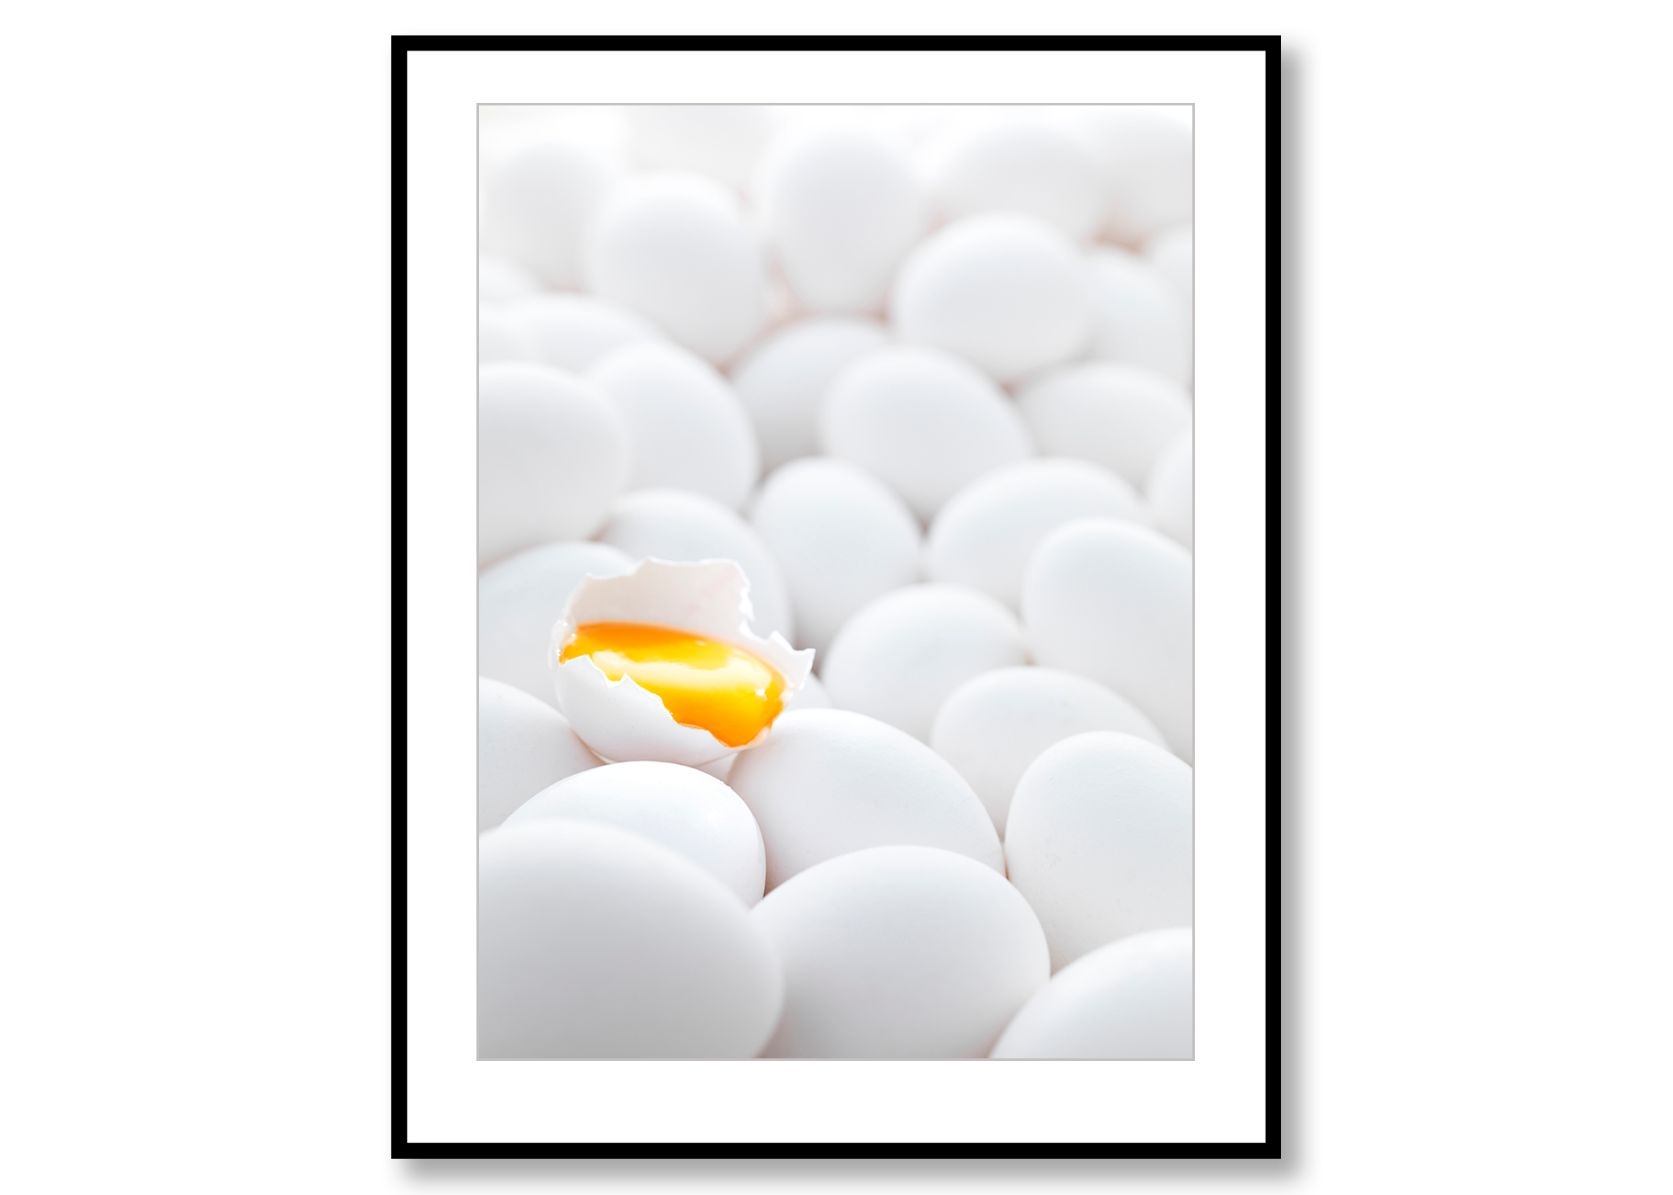 Eggs. Food Art. Prints for Sale. Photo by Fredrik rege